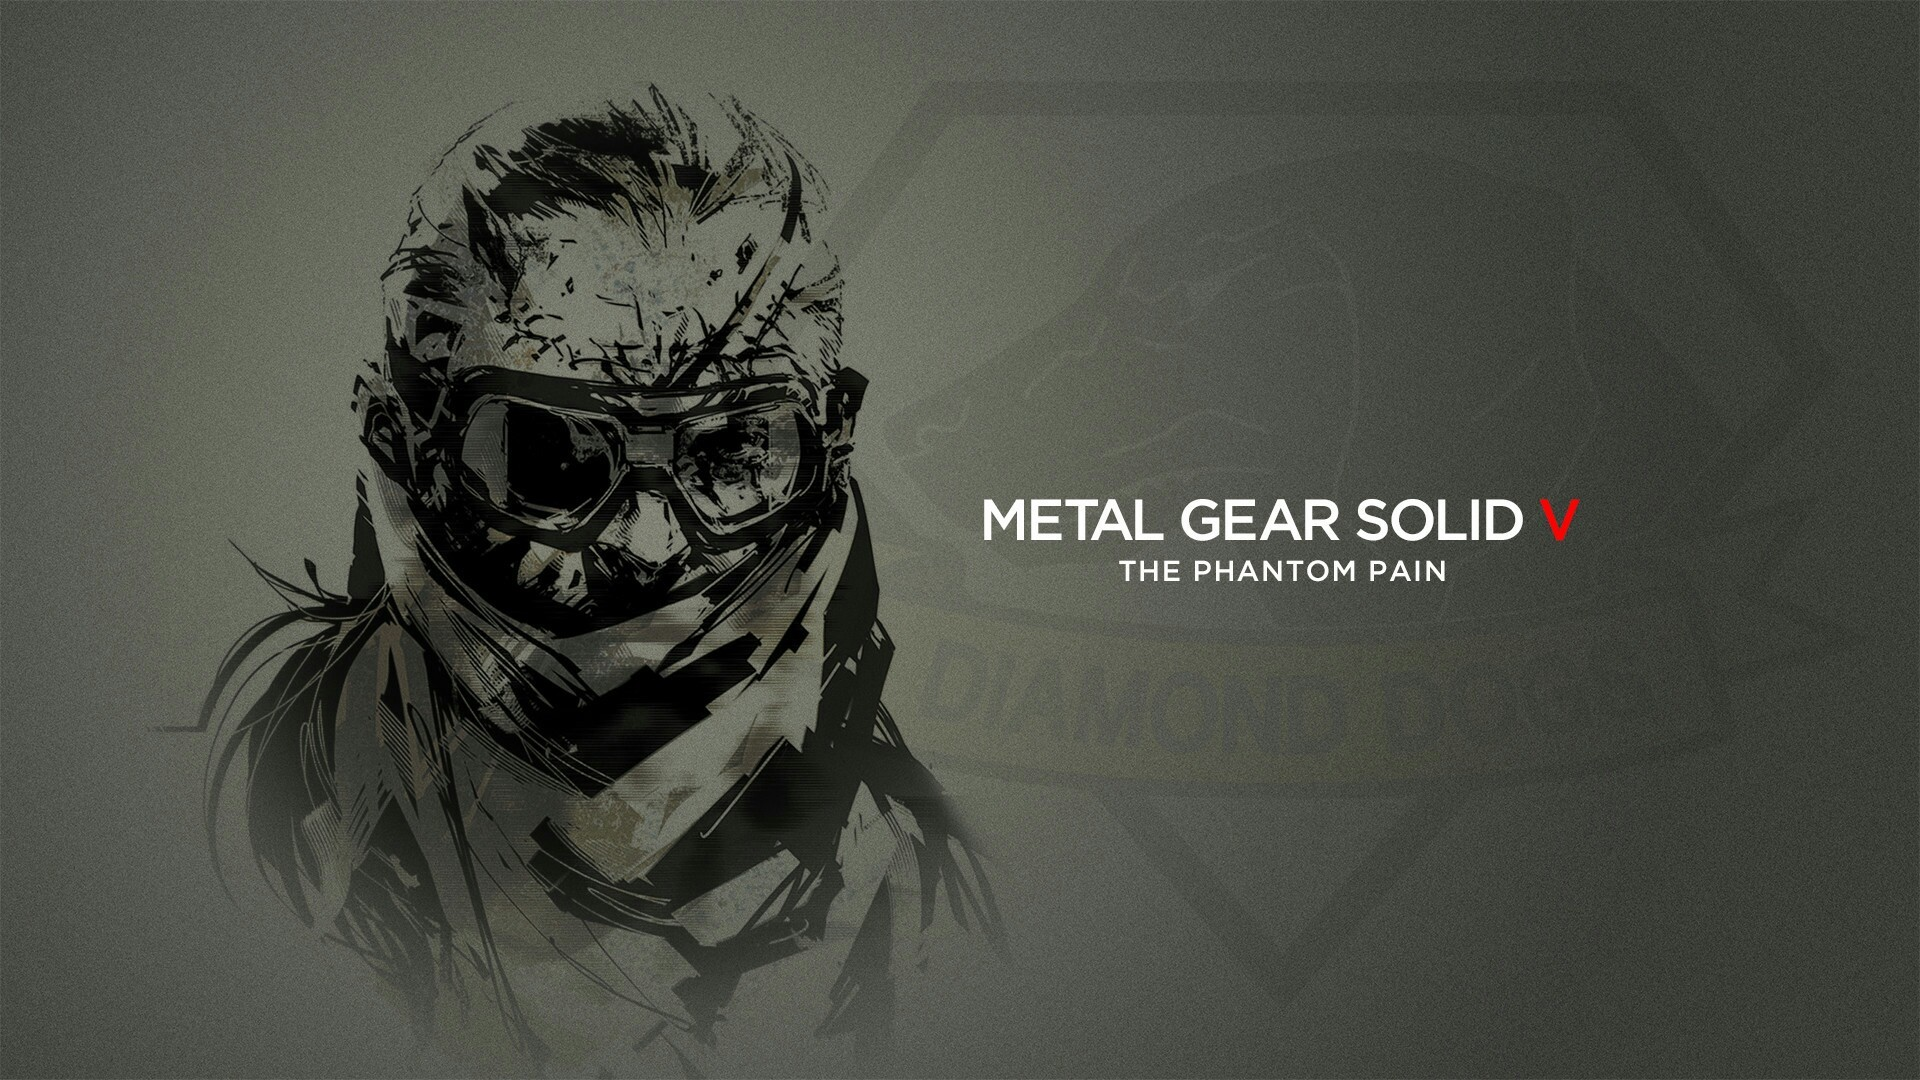 metal gear solid v wallpapers (85+ images)